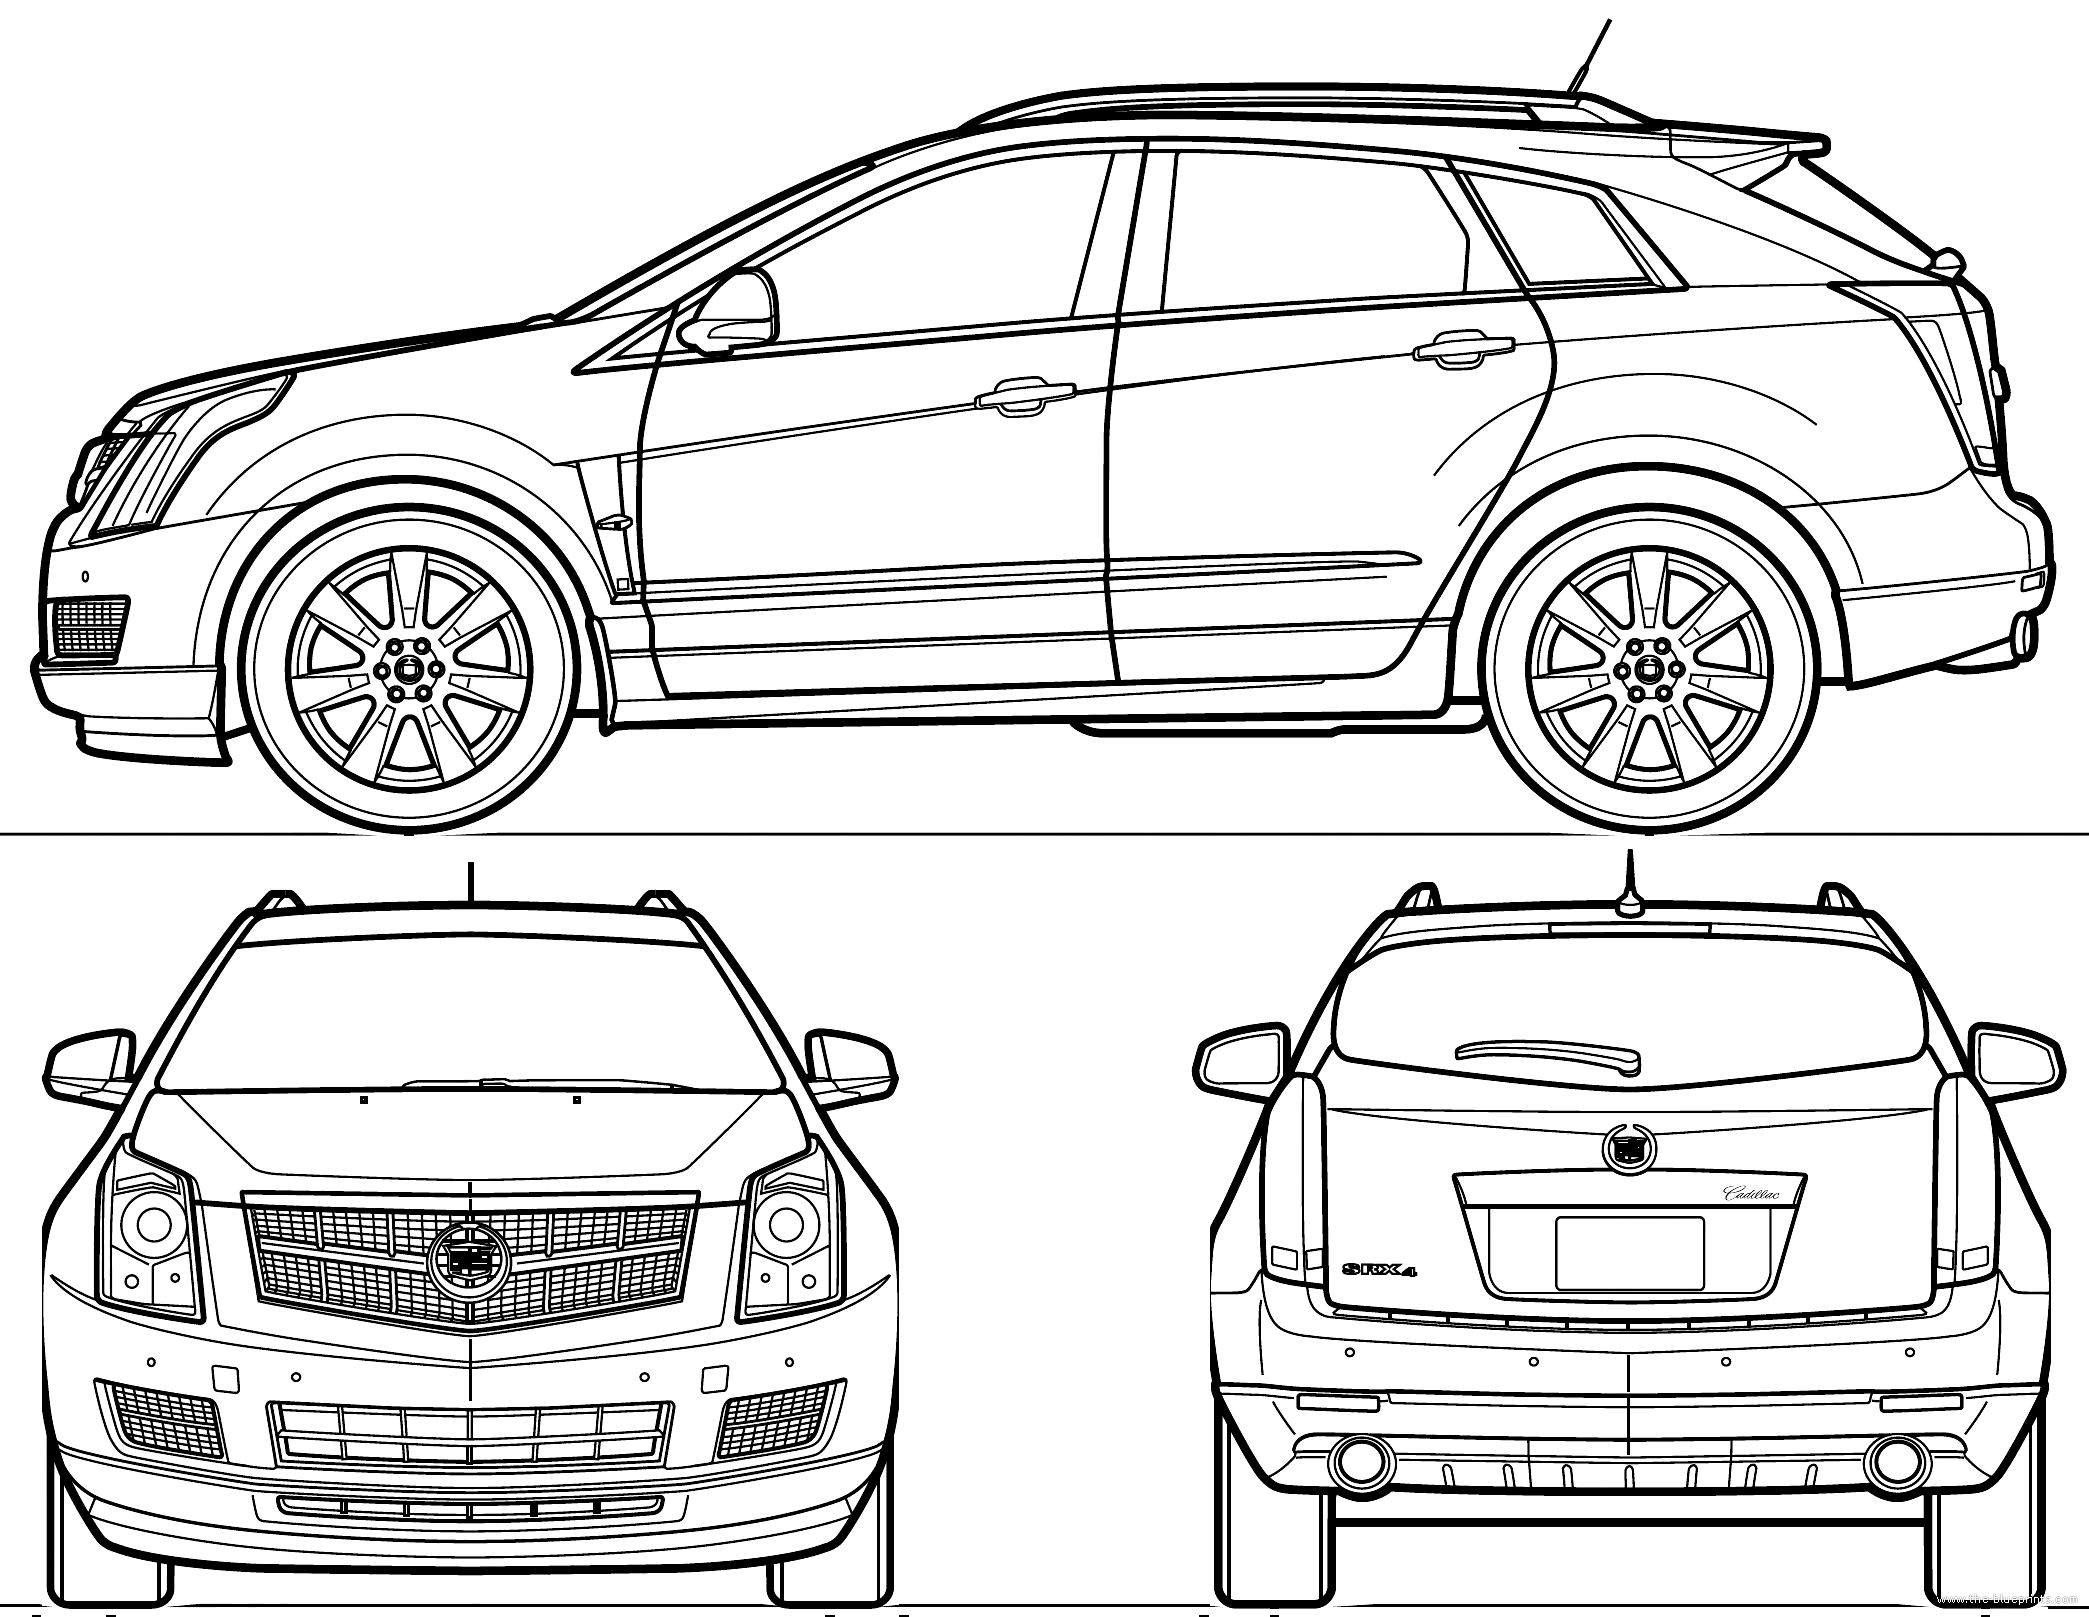 Cadillac Car Coloring Pages : How to draw a cadillac logo